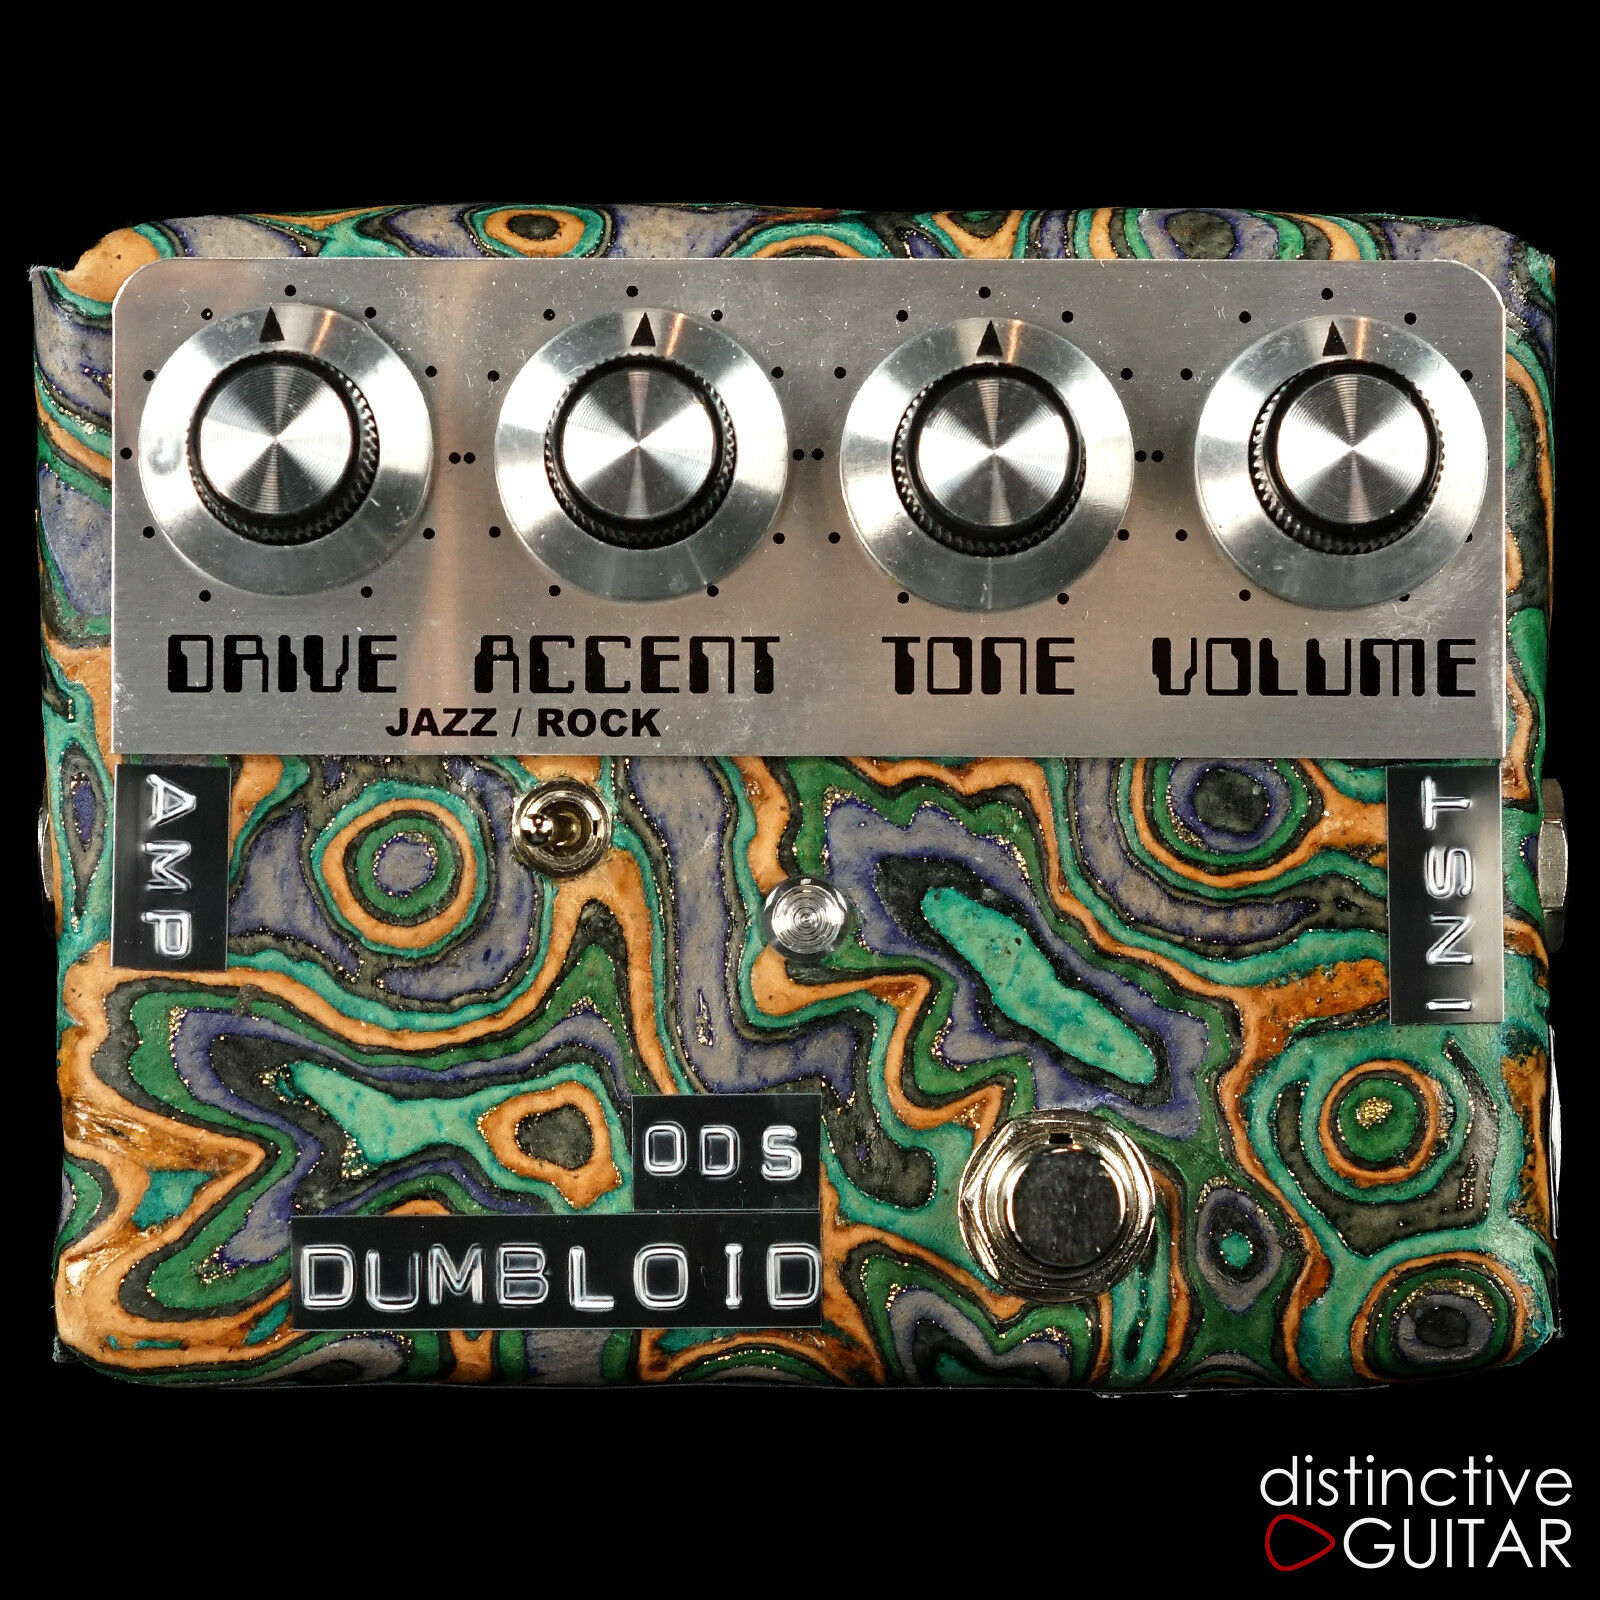 NEW SHINS MUSIC DUMBLOID ODS OVERDRIVE SPECIAL EFFECTS PEDAL Blau MARBLE LEATHER